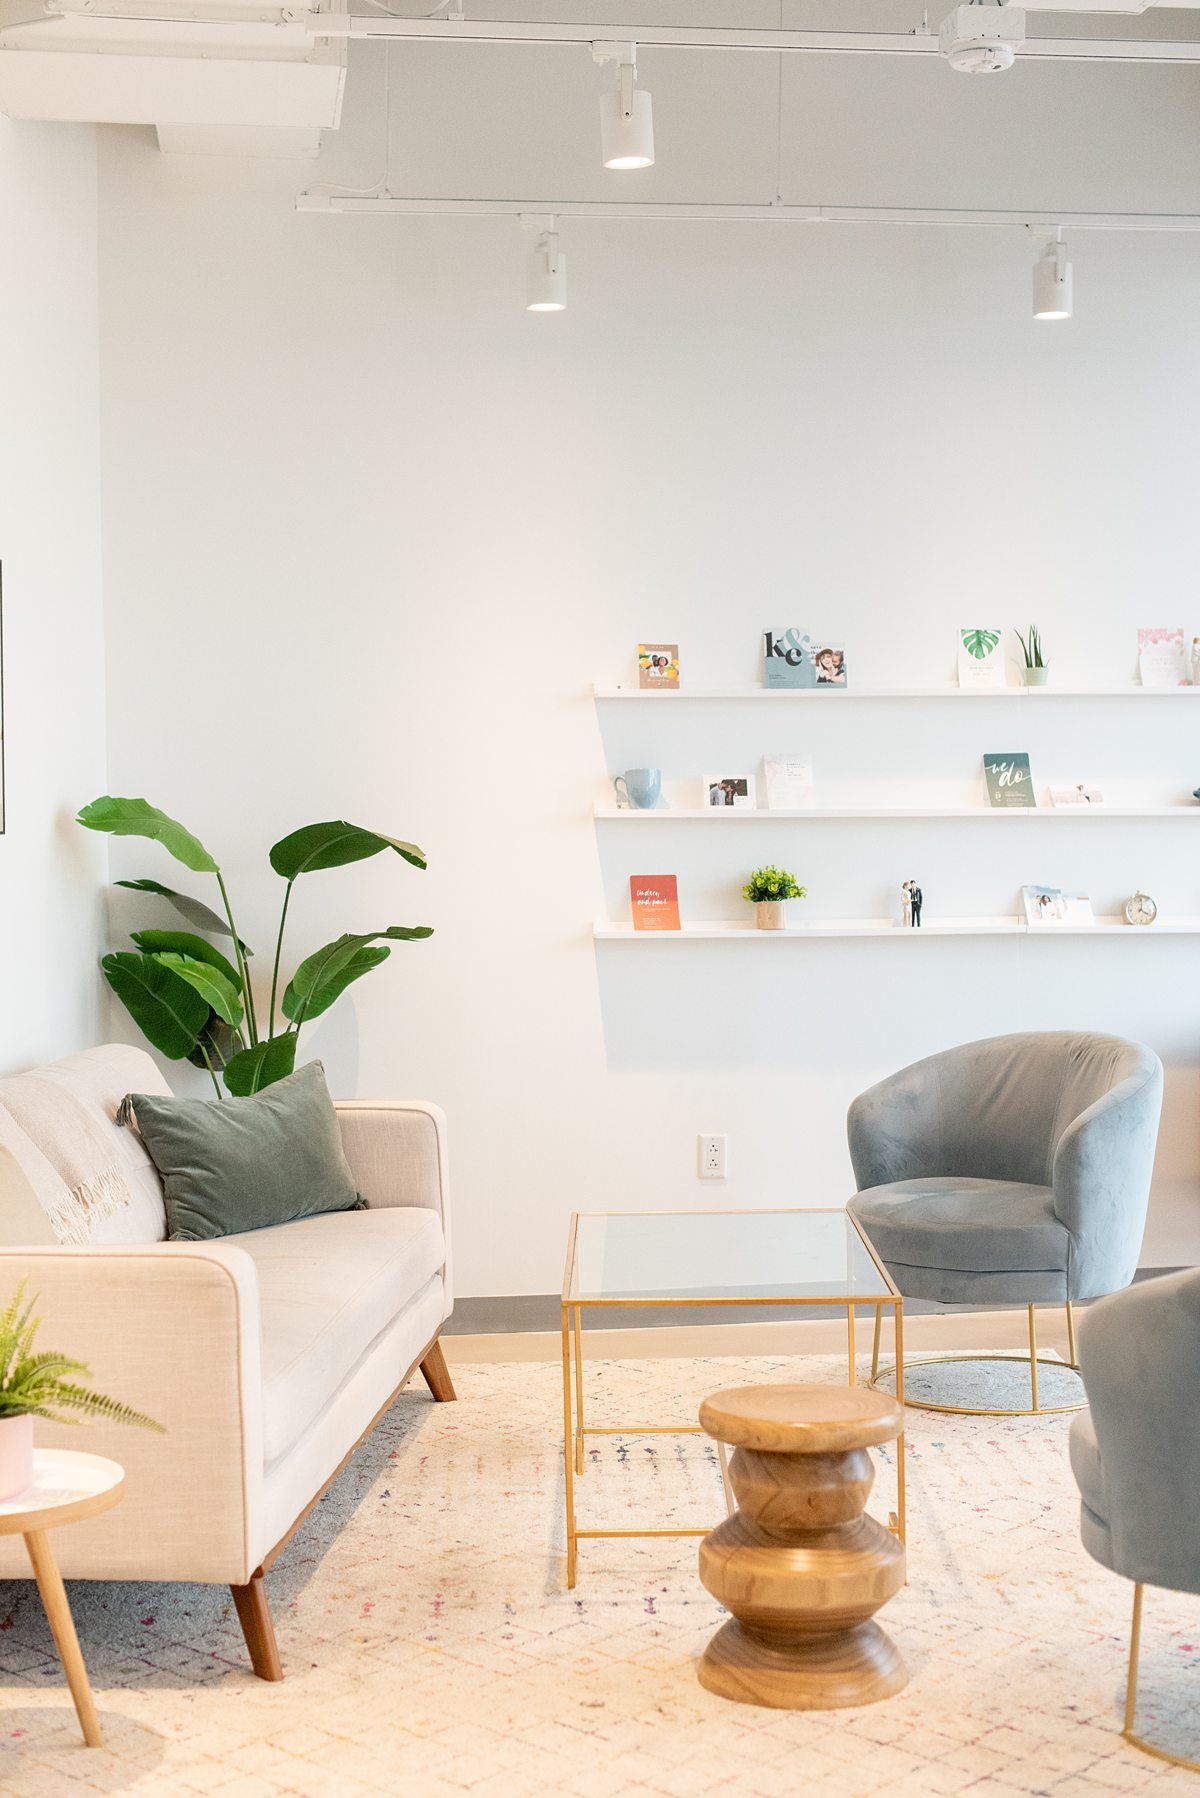 Zola Headquarters has a demo room with their stationery and beautiful furniture to co-work. We take a look behind the scenes of the wedding website and app HQ in NYC, with Mikkel Paige Photography.